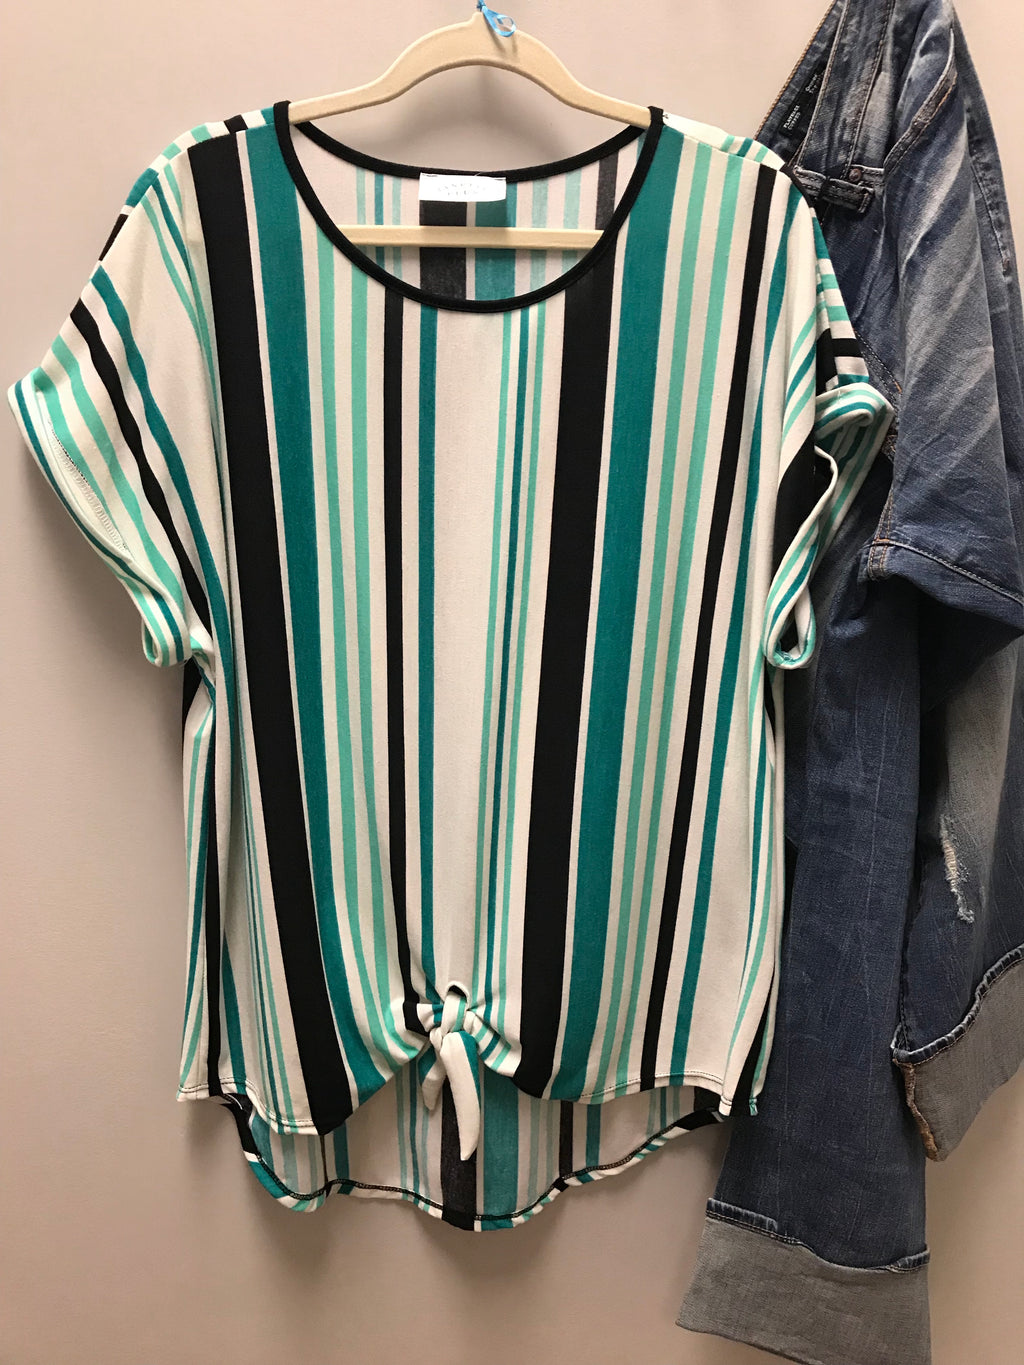 Green Striped Knot Top - Kade & Cate